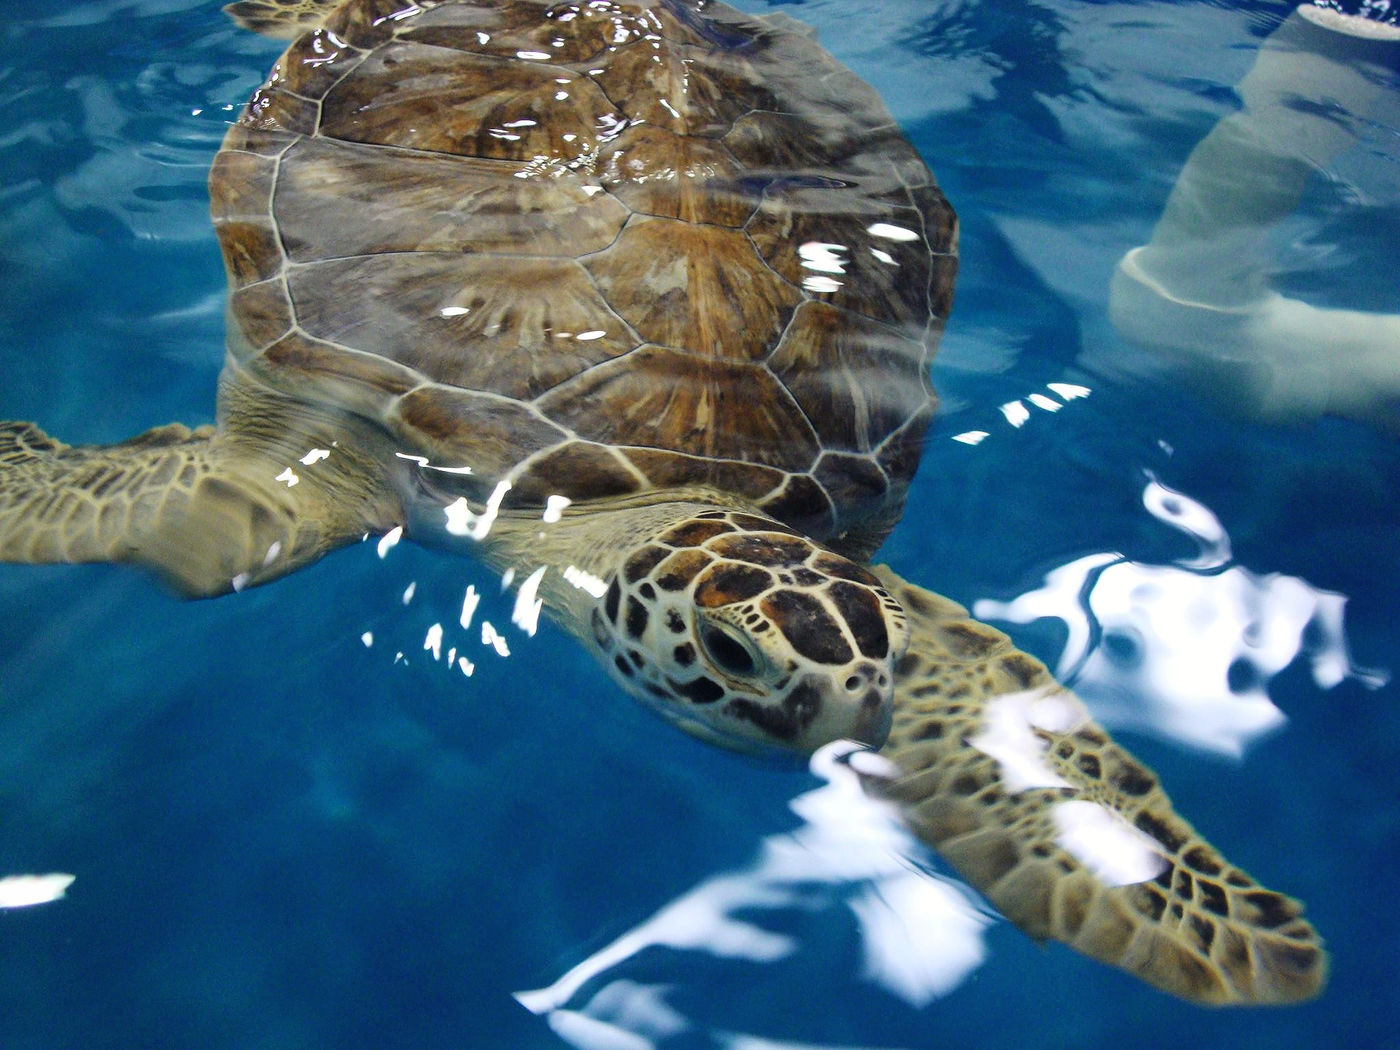 Karen Beasley Sea Turtle Rescue and Rehabilitation Center in Surf City